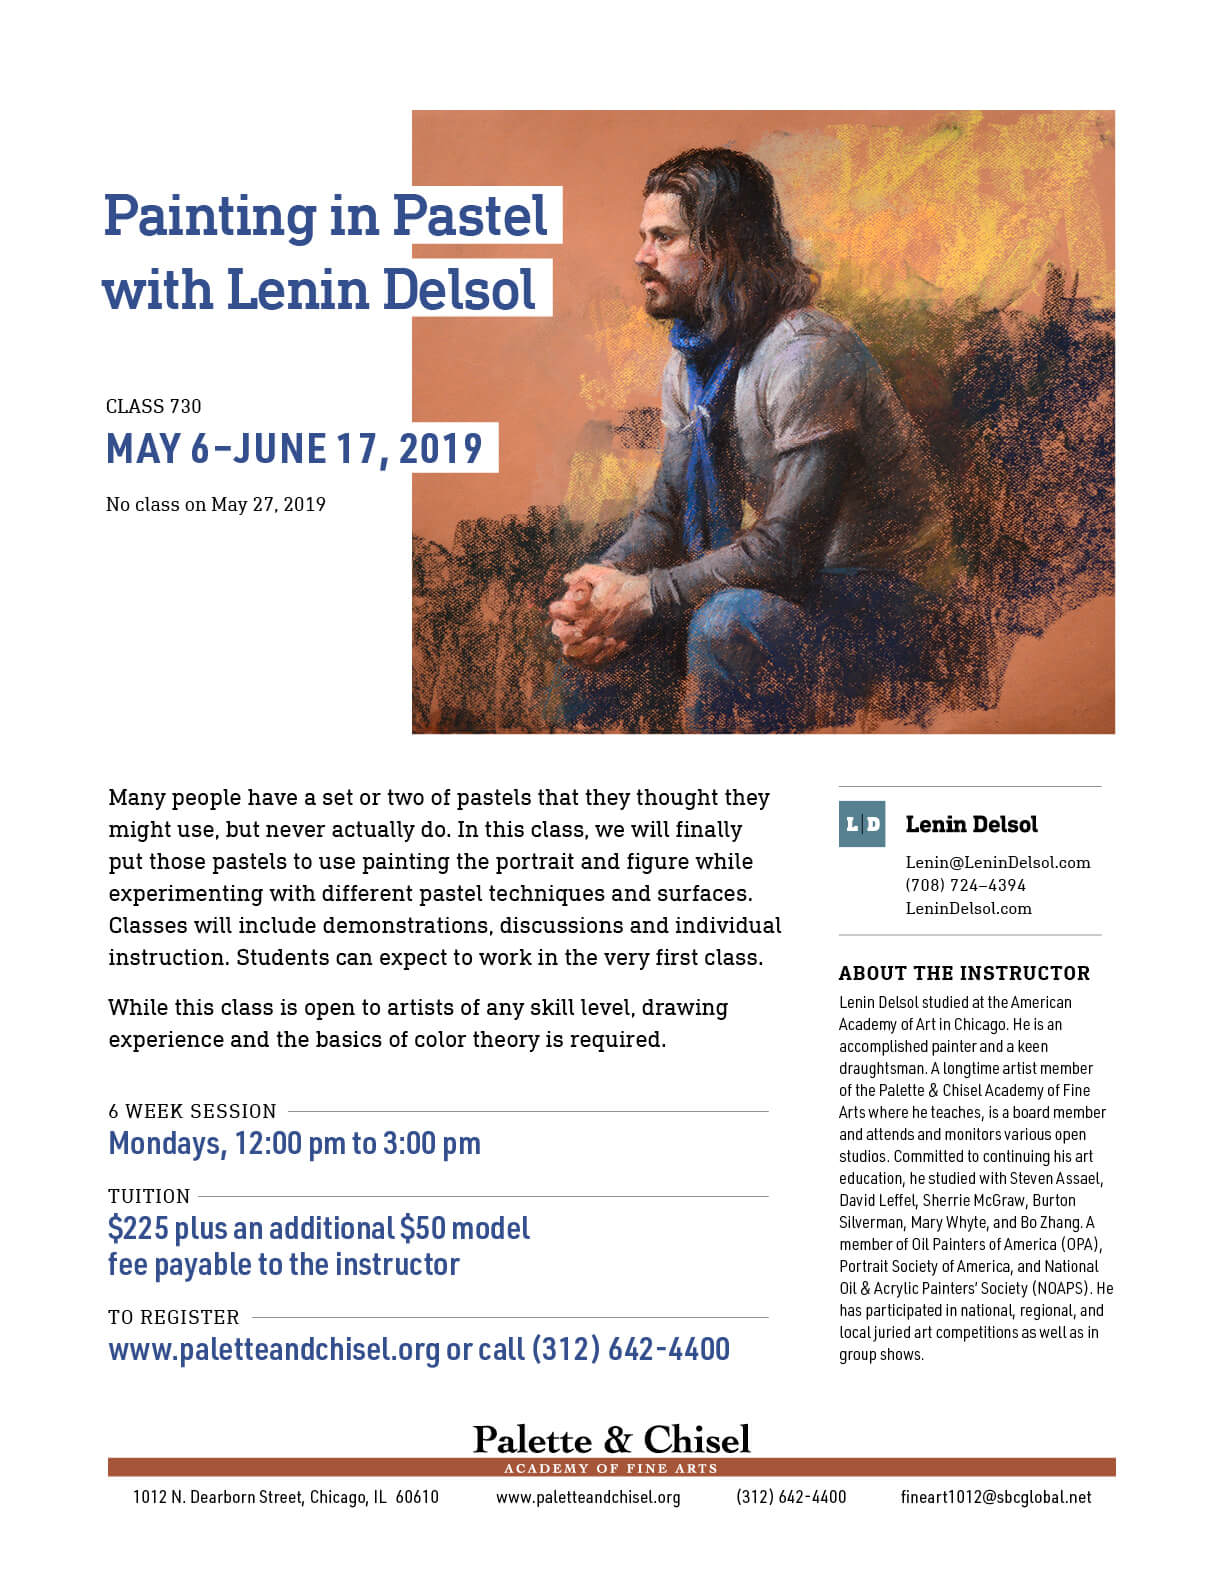 Painting in Pastel with Lenin Delsol Class flyer